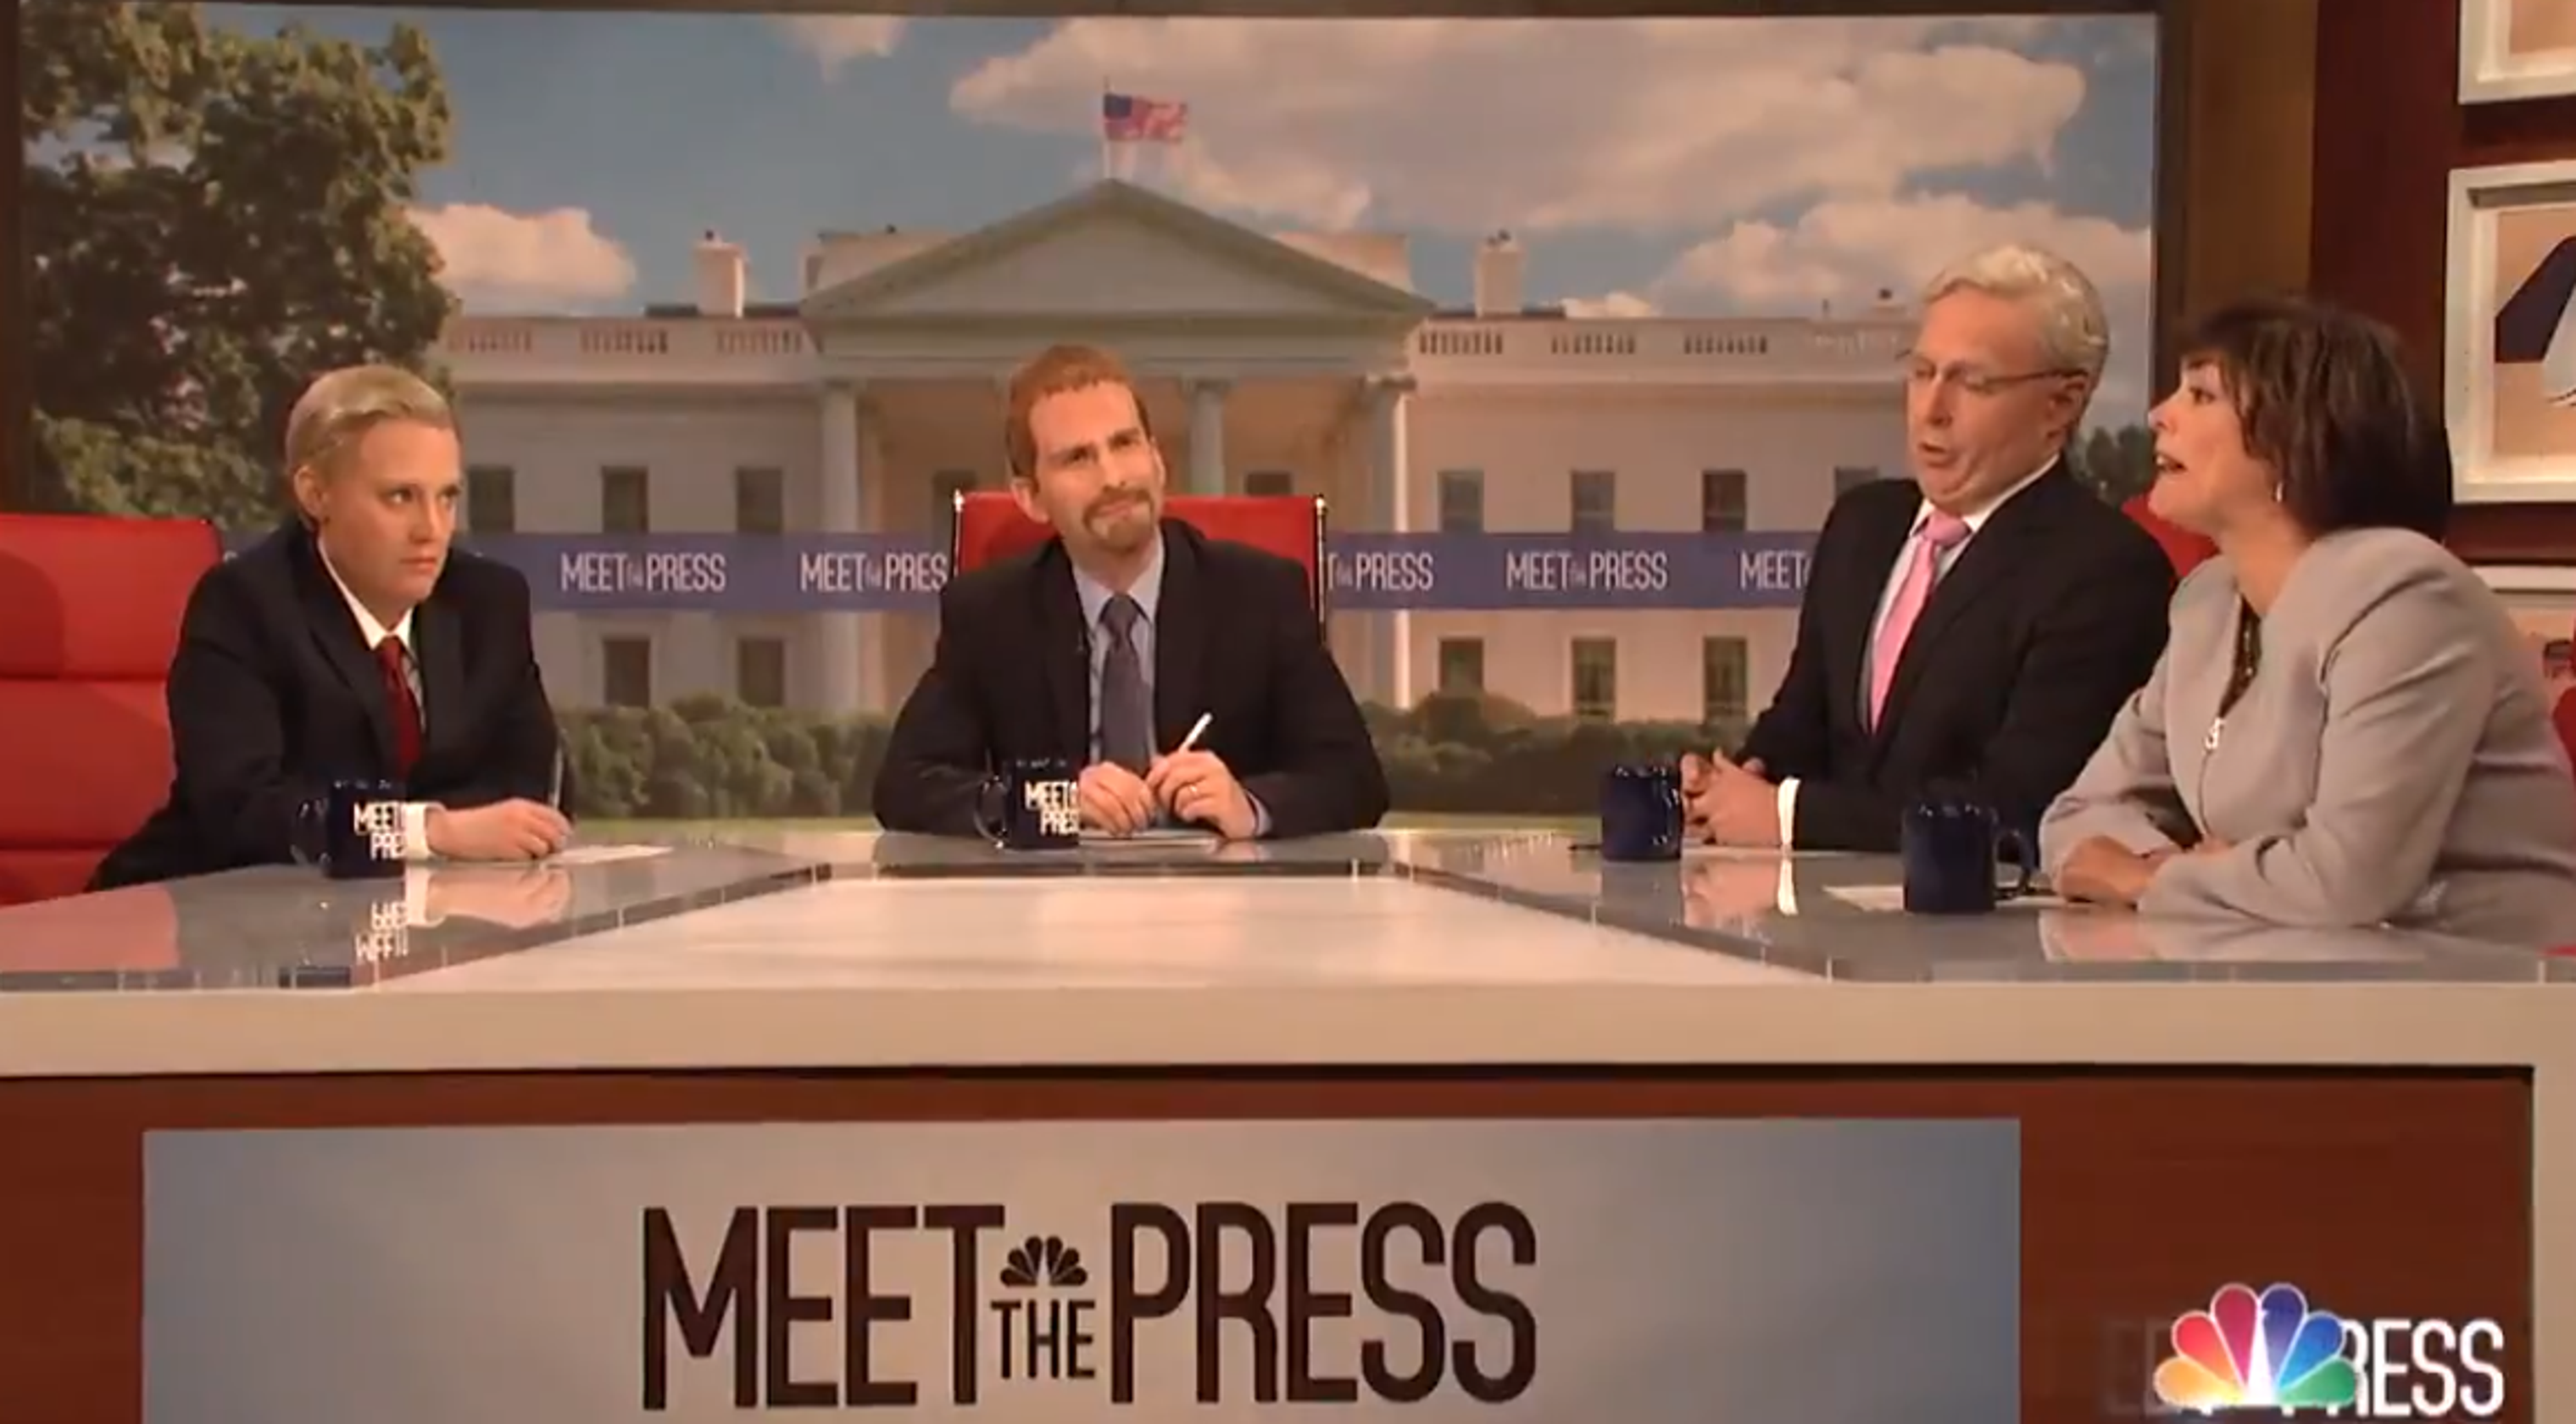 'SNL' cold open shows frightened GOP leaders refusing to drop their support of Trump